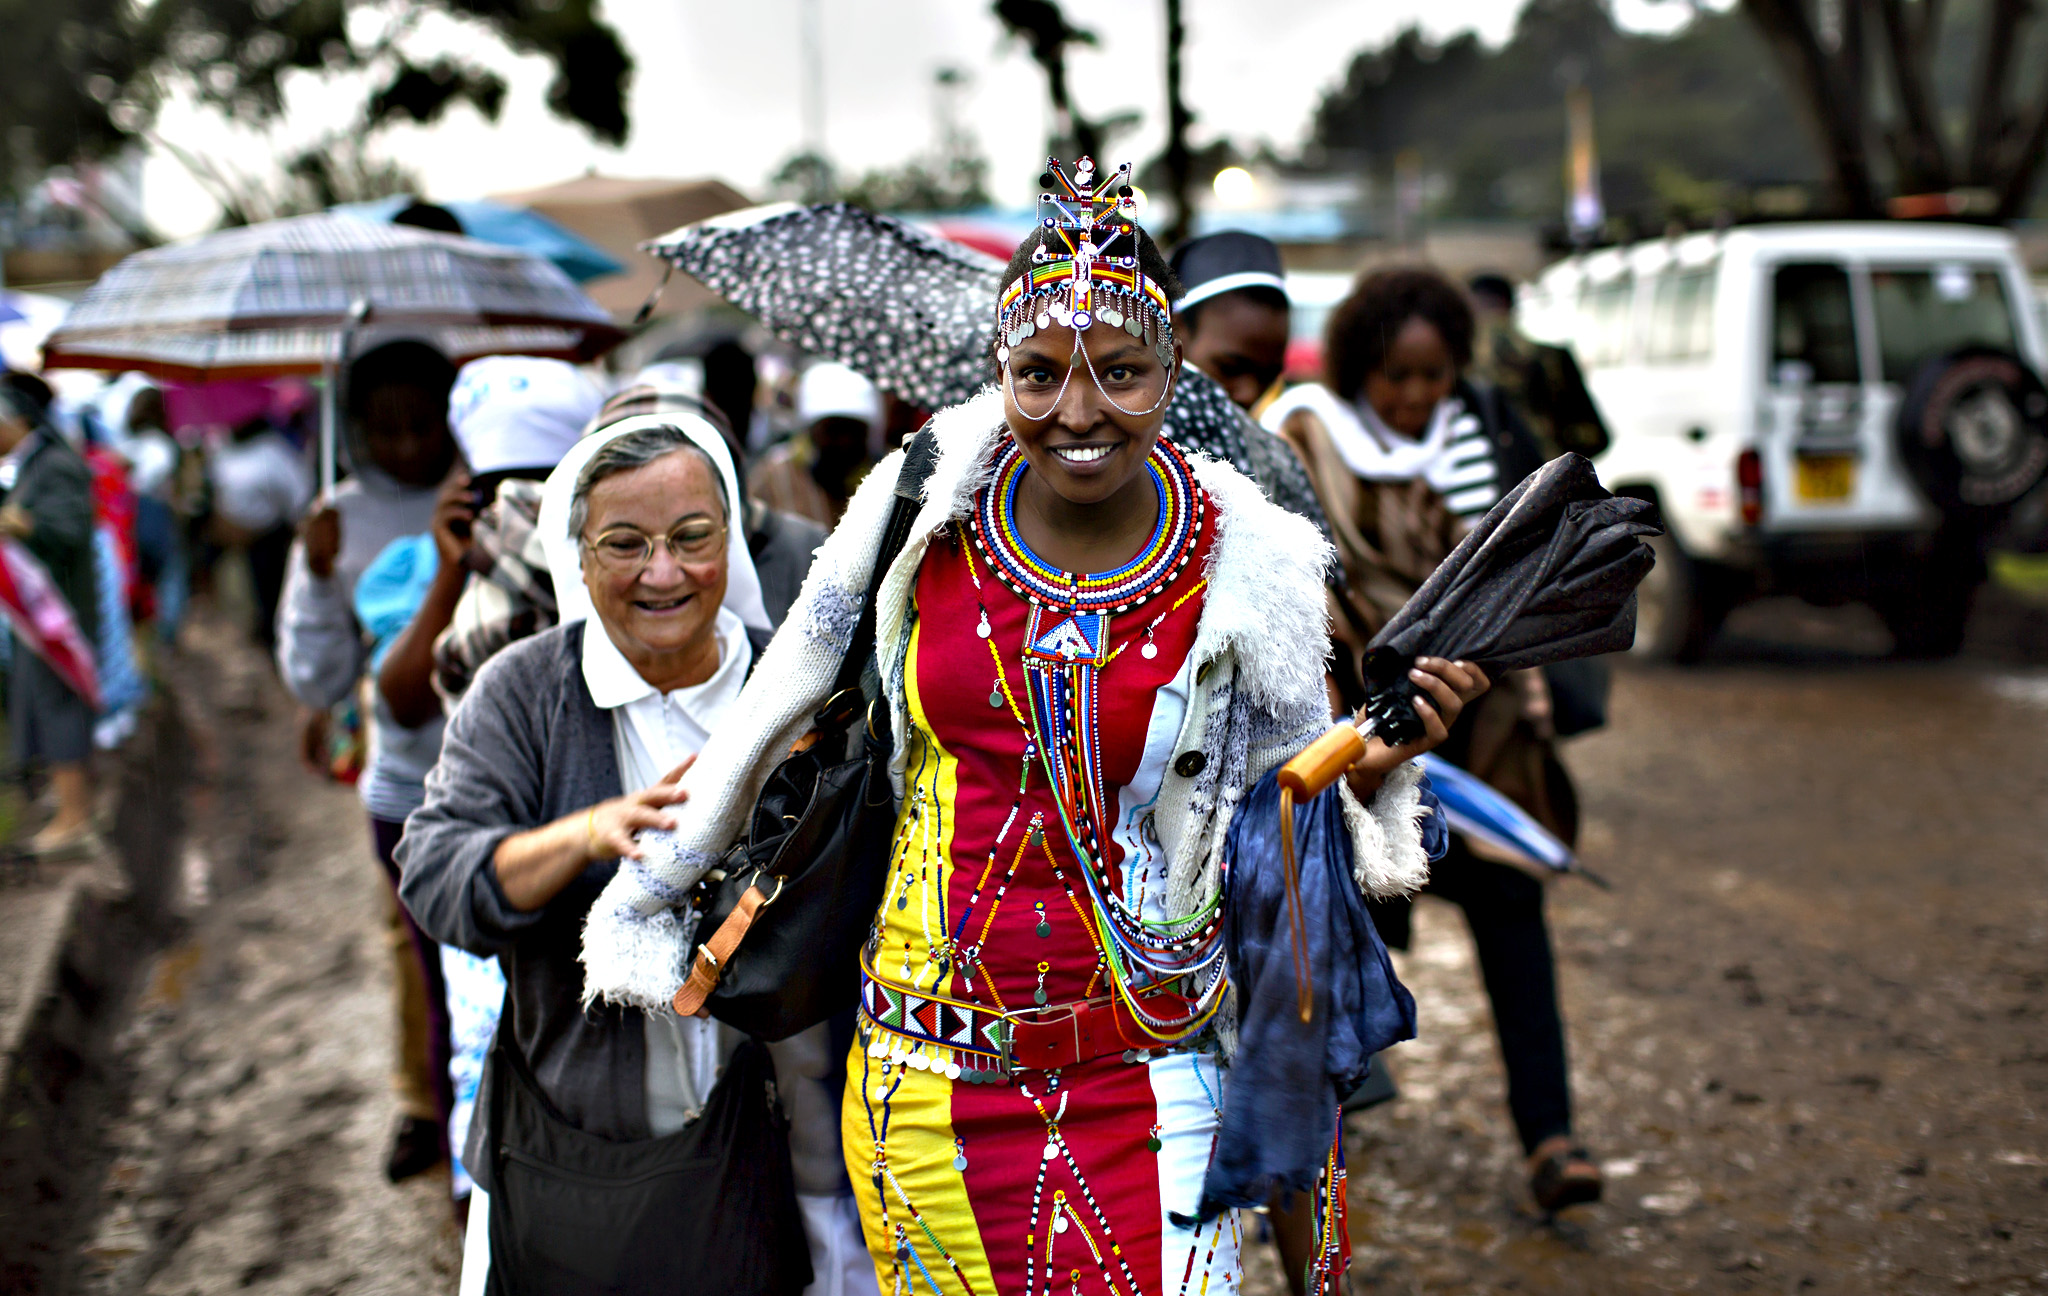 A Catholic sister and a Maasai woman arrive just after dawn in the rain and mud to attend a Mass to be given by Pope Francis at the campus of the University of Nairobi in Kenya Thursday, Nov. 26, 2015. Pope Francis is in Kenya on his first-ever trip to Africa, a six-day pilgrimage that will also take him to Uganda and the Central African Republic.